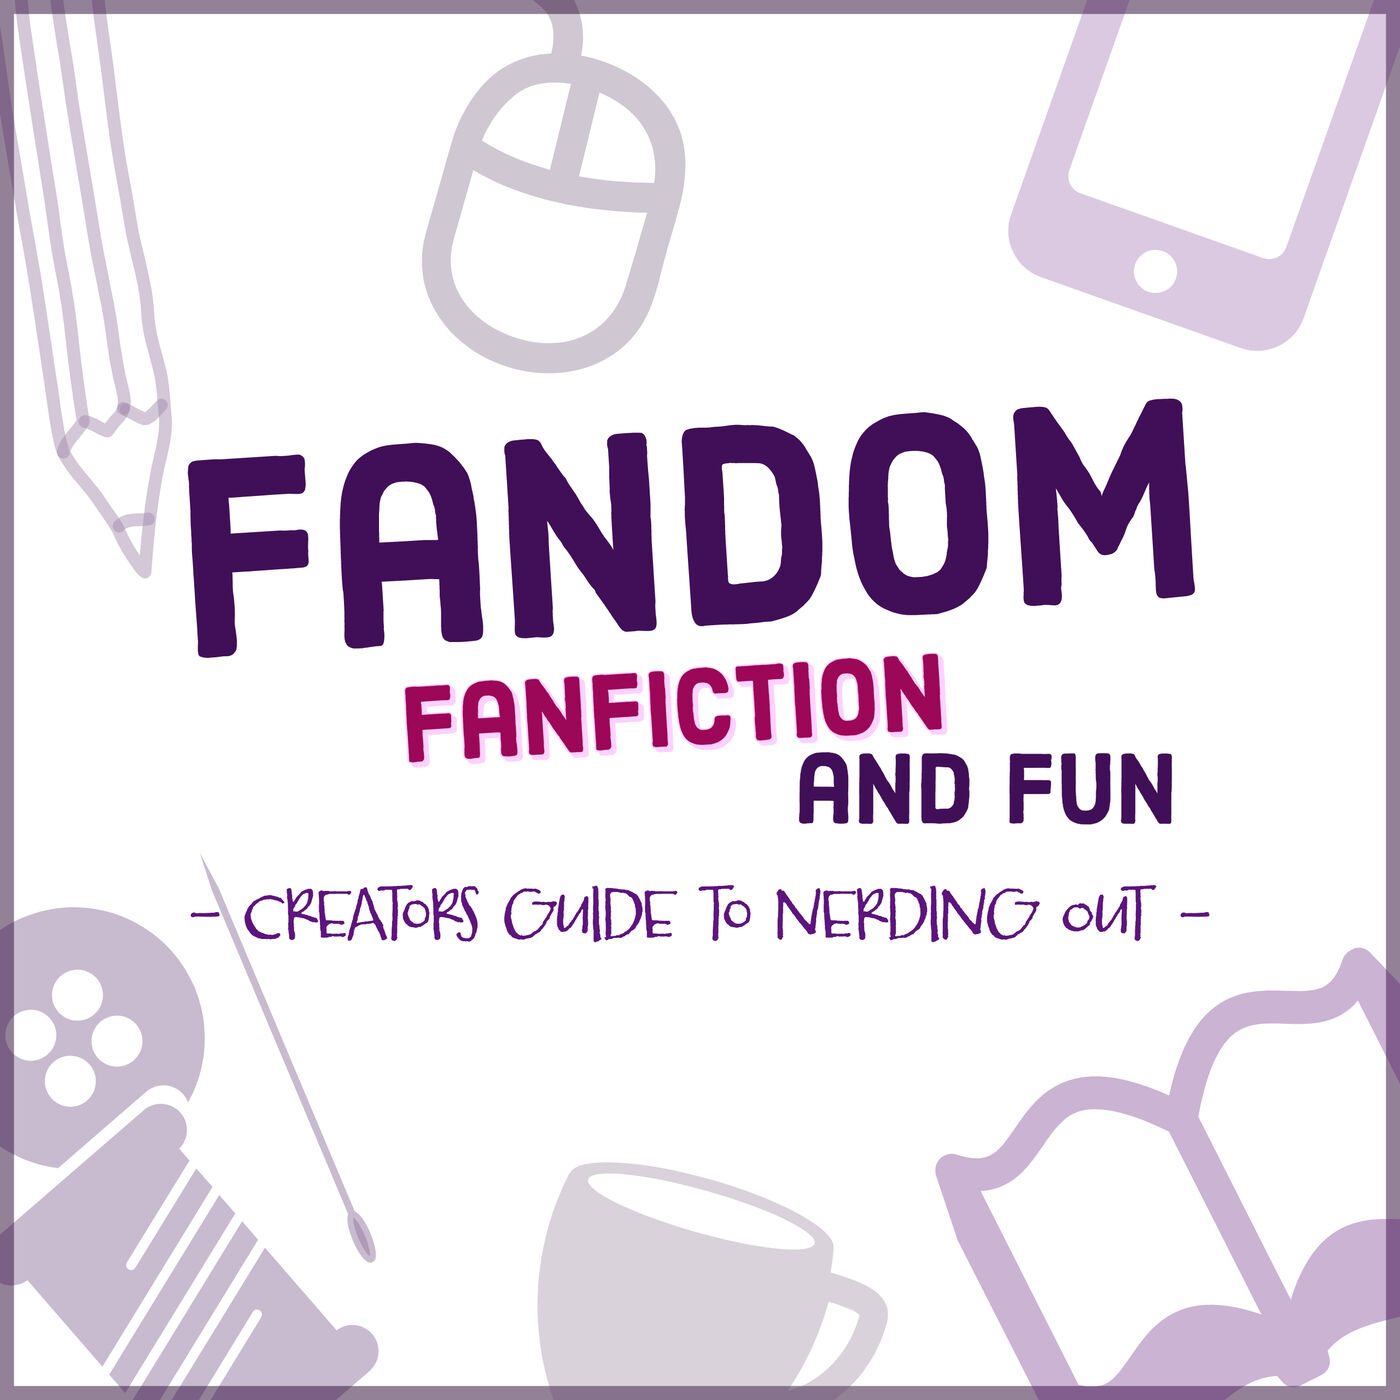 What Is Fandom?